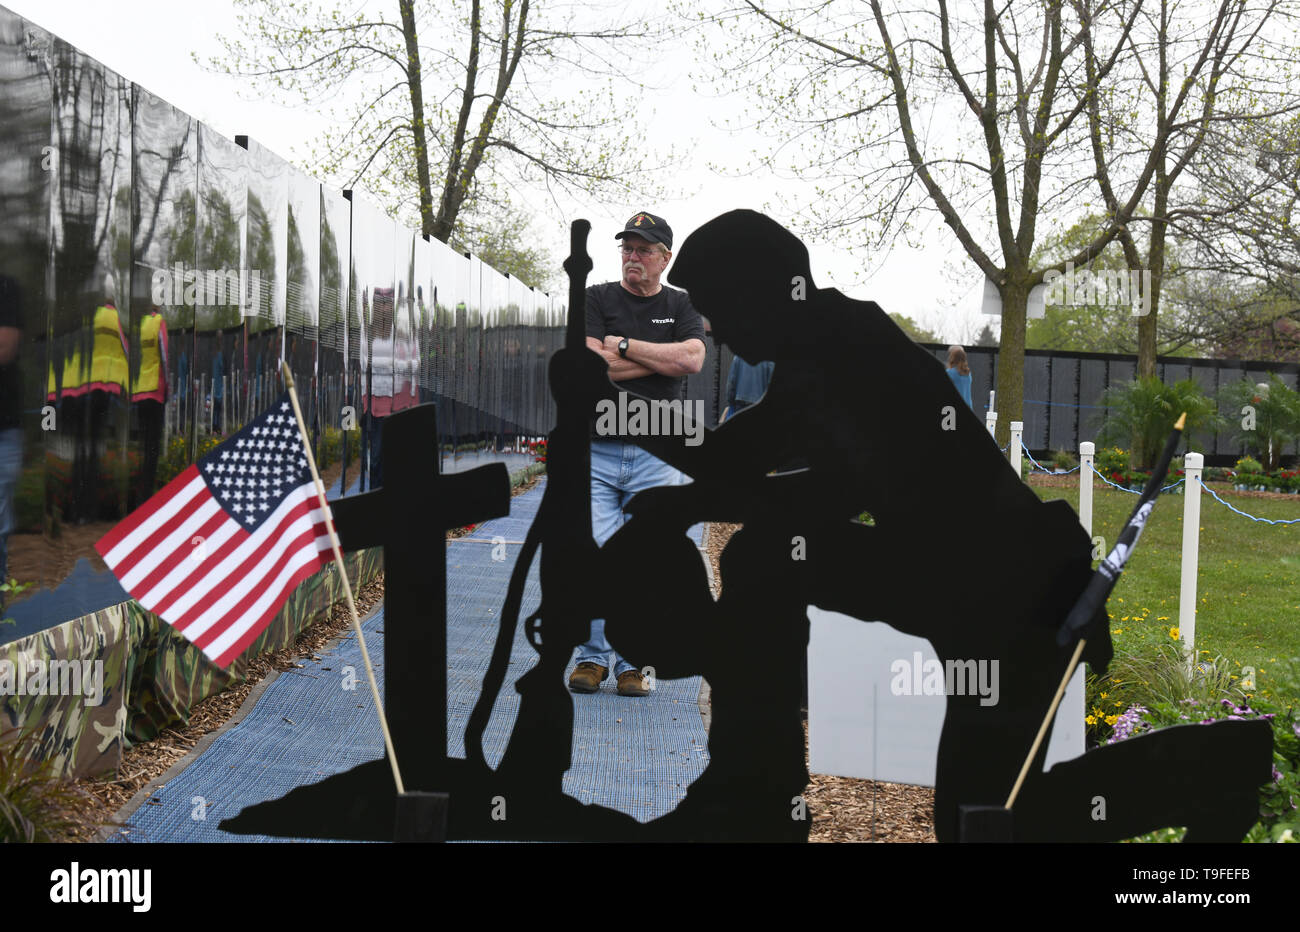 Racine, Wisconsin, USA. 18th May, 2019. David McGahen, a Vietnam-era Navy veteran, visits the Moving Wall, a half-size replica of the Vietnam Veterans Memorial, in Racine, Wisconsin, Saturday May 18, 2019. Forty-seven soldiers from Racine were killed during the war. The Moving Wall has been touring the United States for more than 30 years. Credit: Mark Hertzberg/ZUMA Wire/Alamy Live News - Stock Image